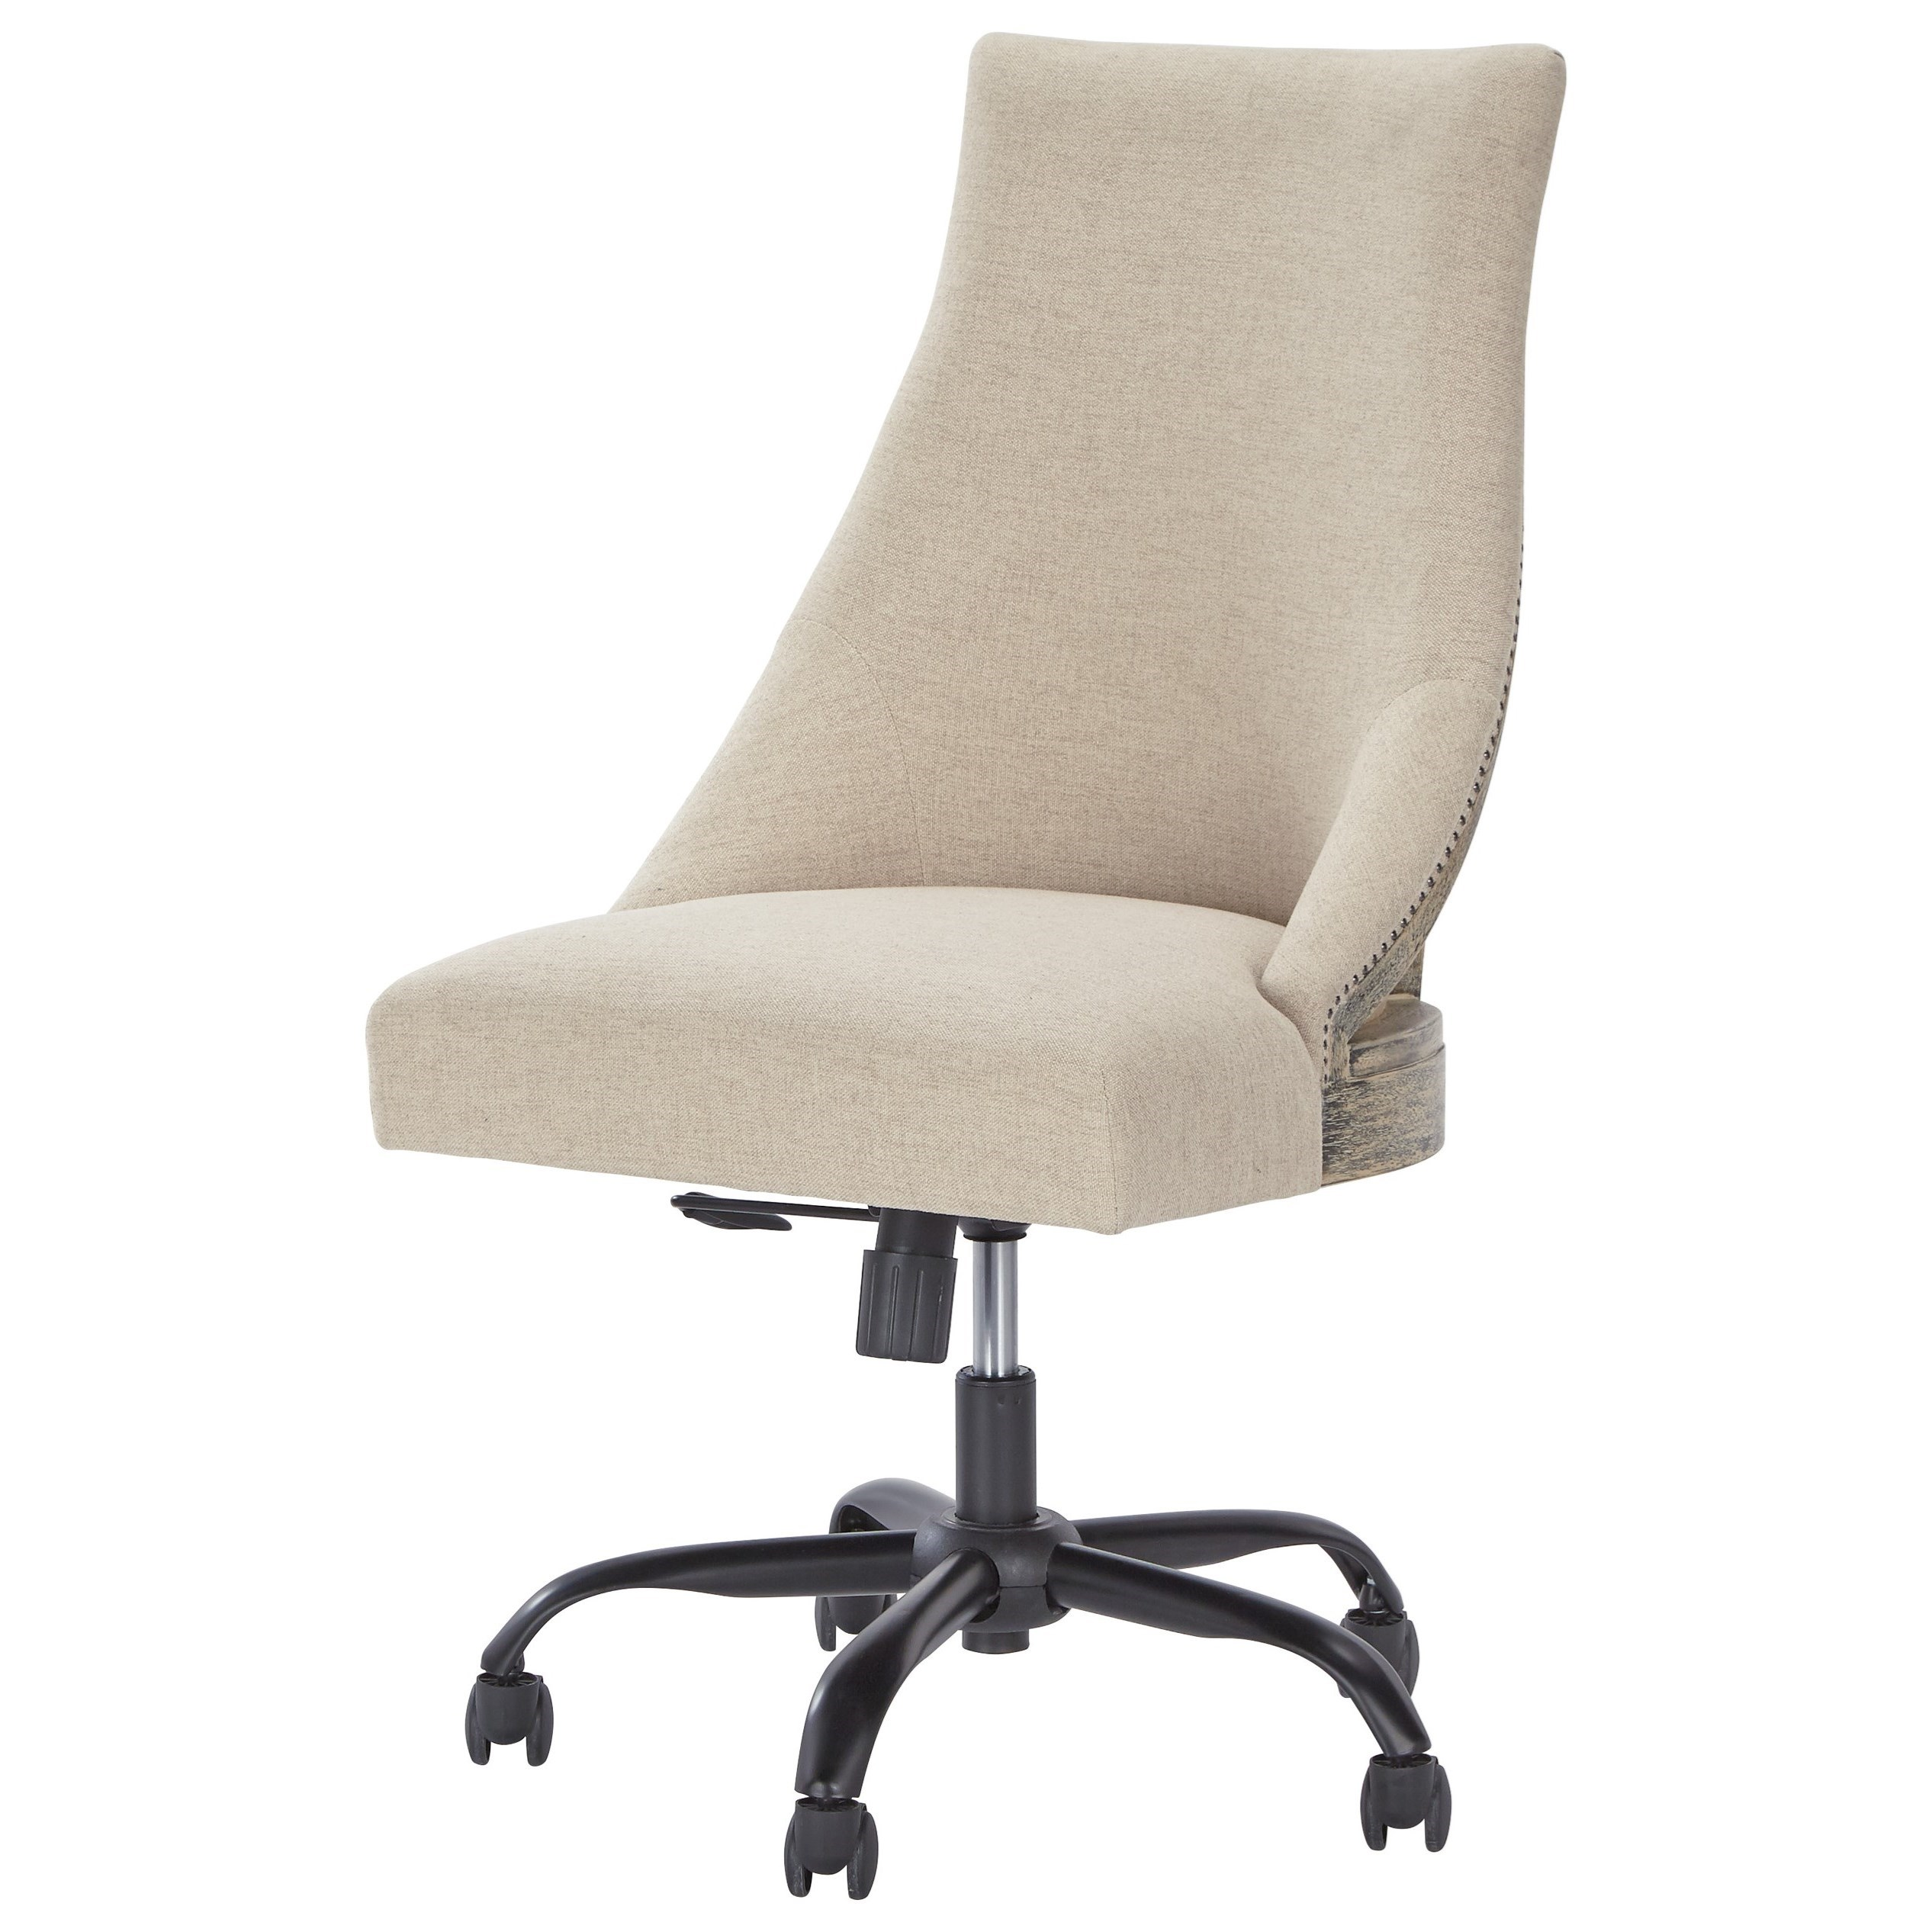 Home Office Swivel Desk Chair In Deconstructed Style By